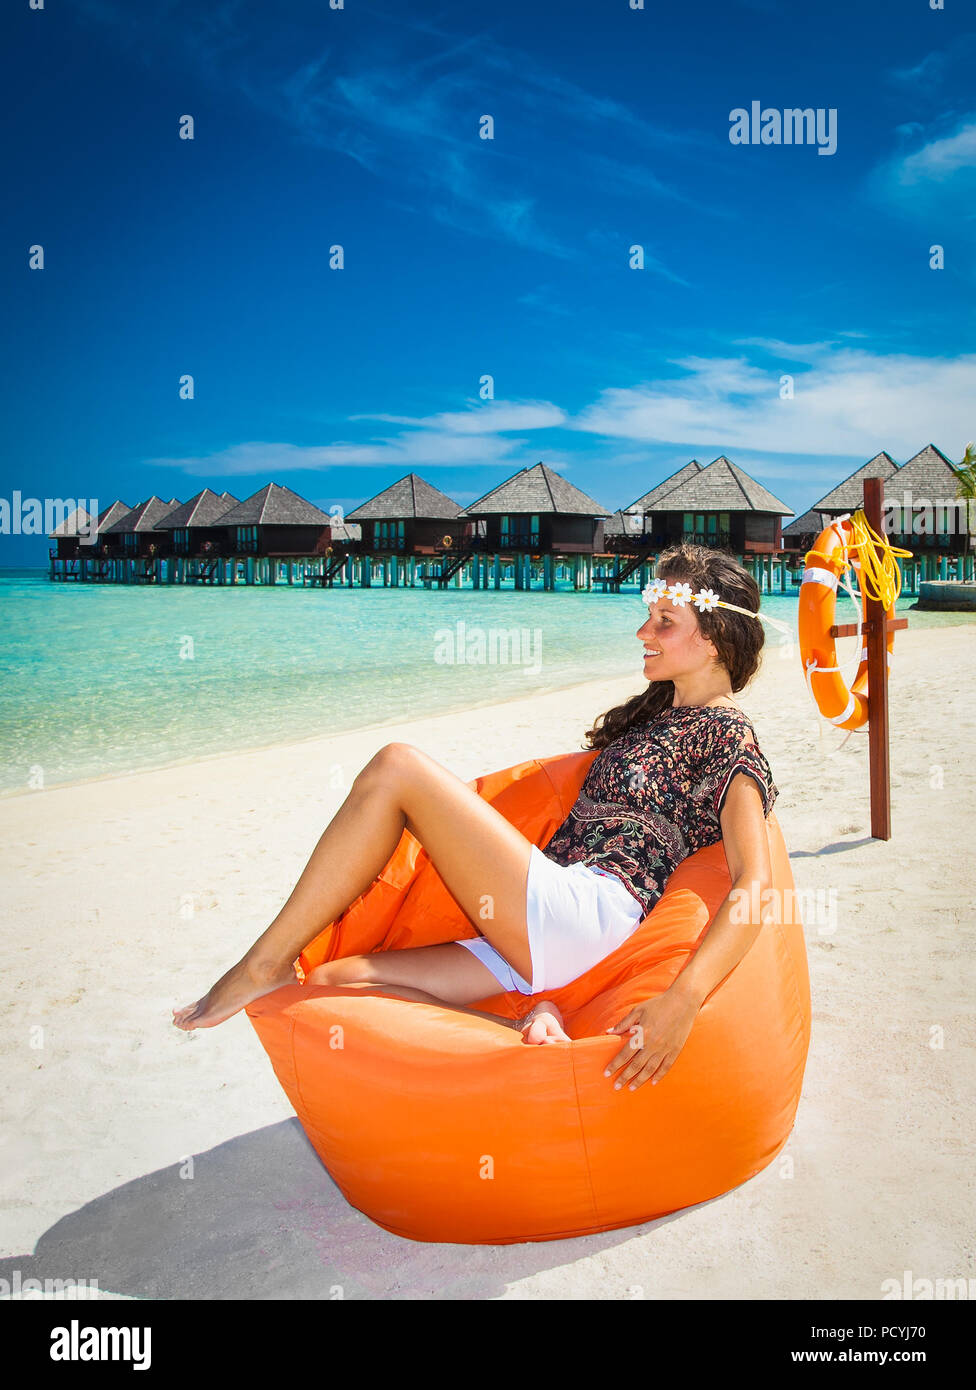 Page 2 Beach Bag In Sand Island High Resolution Stock Photography And Images Alamy